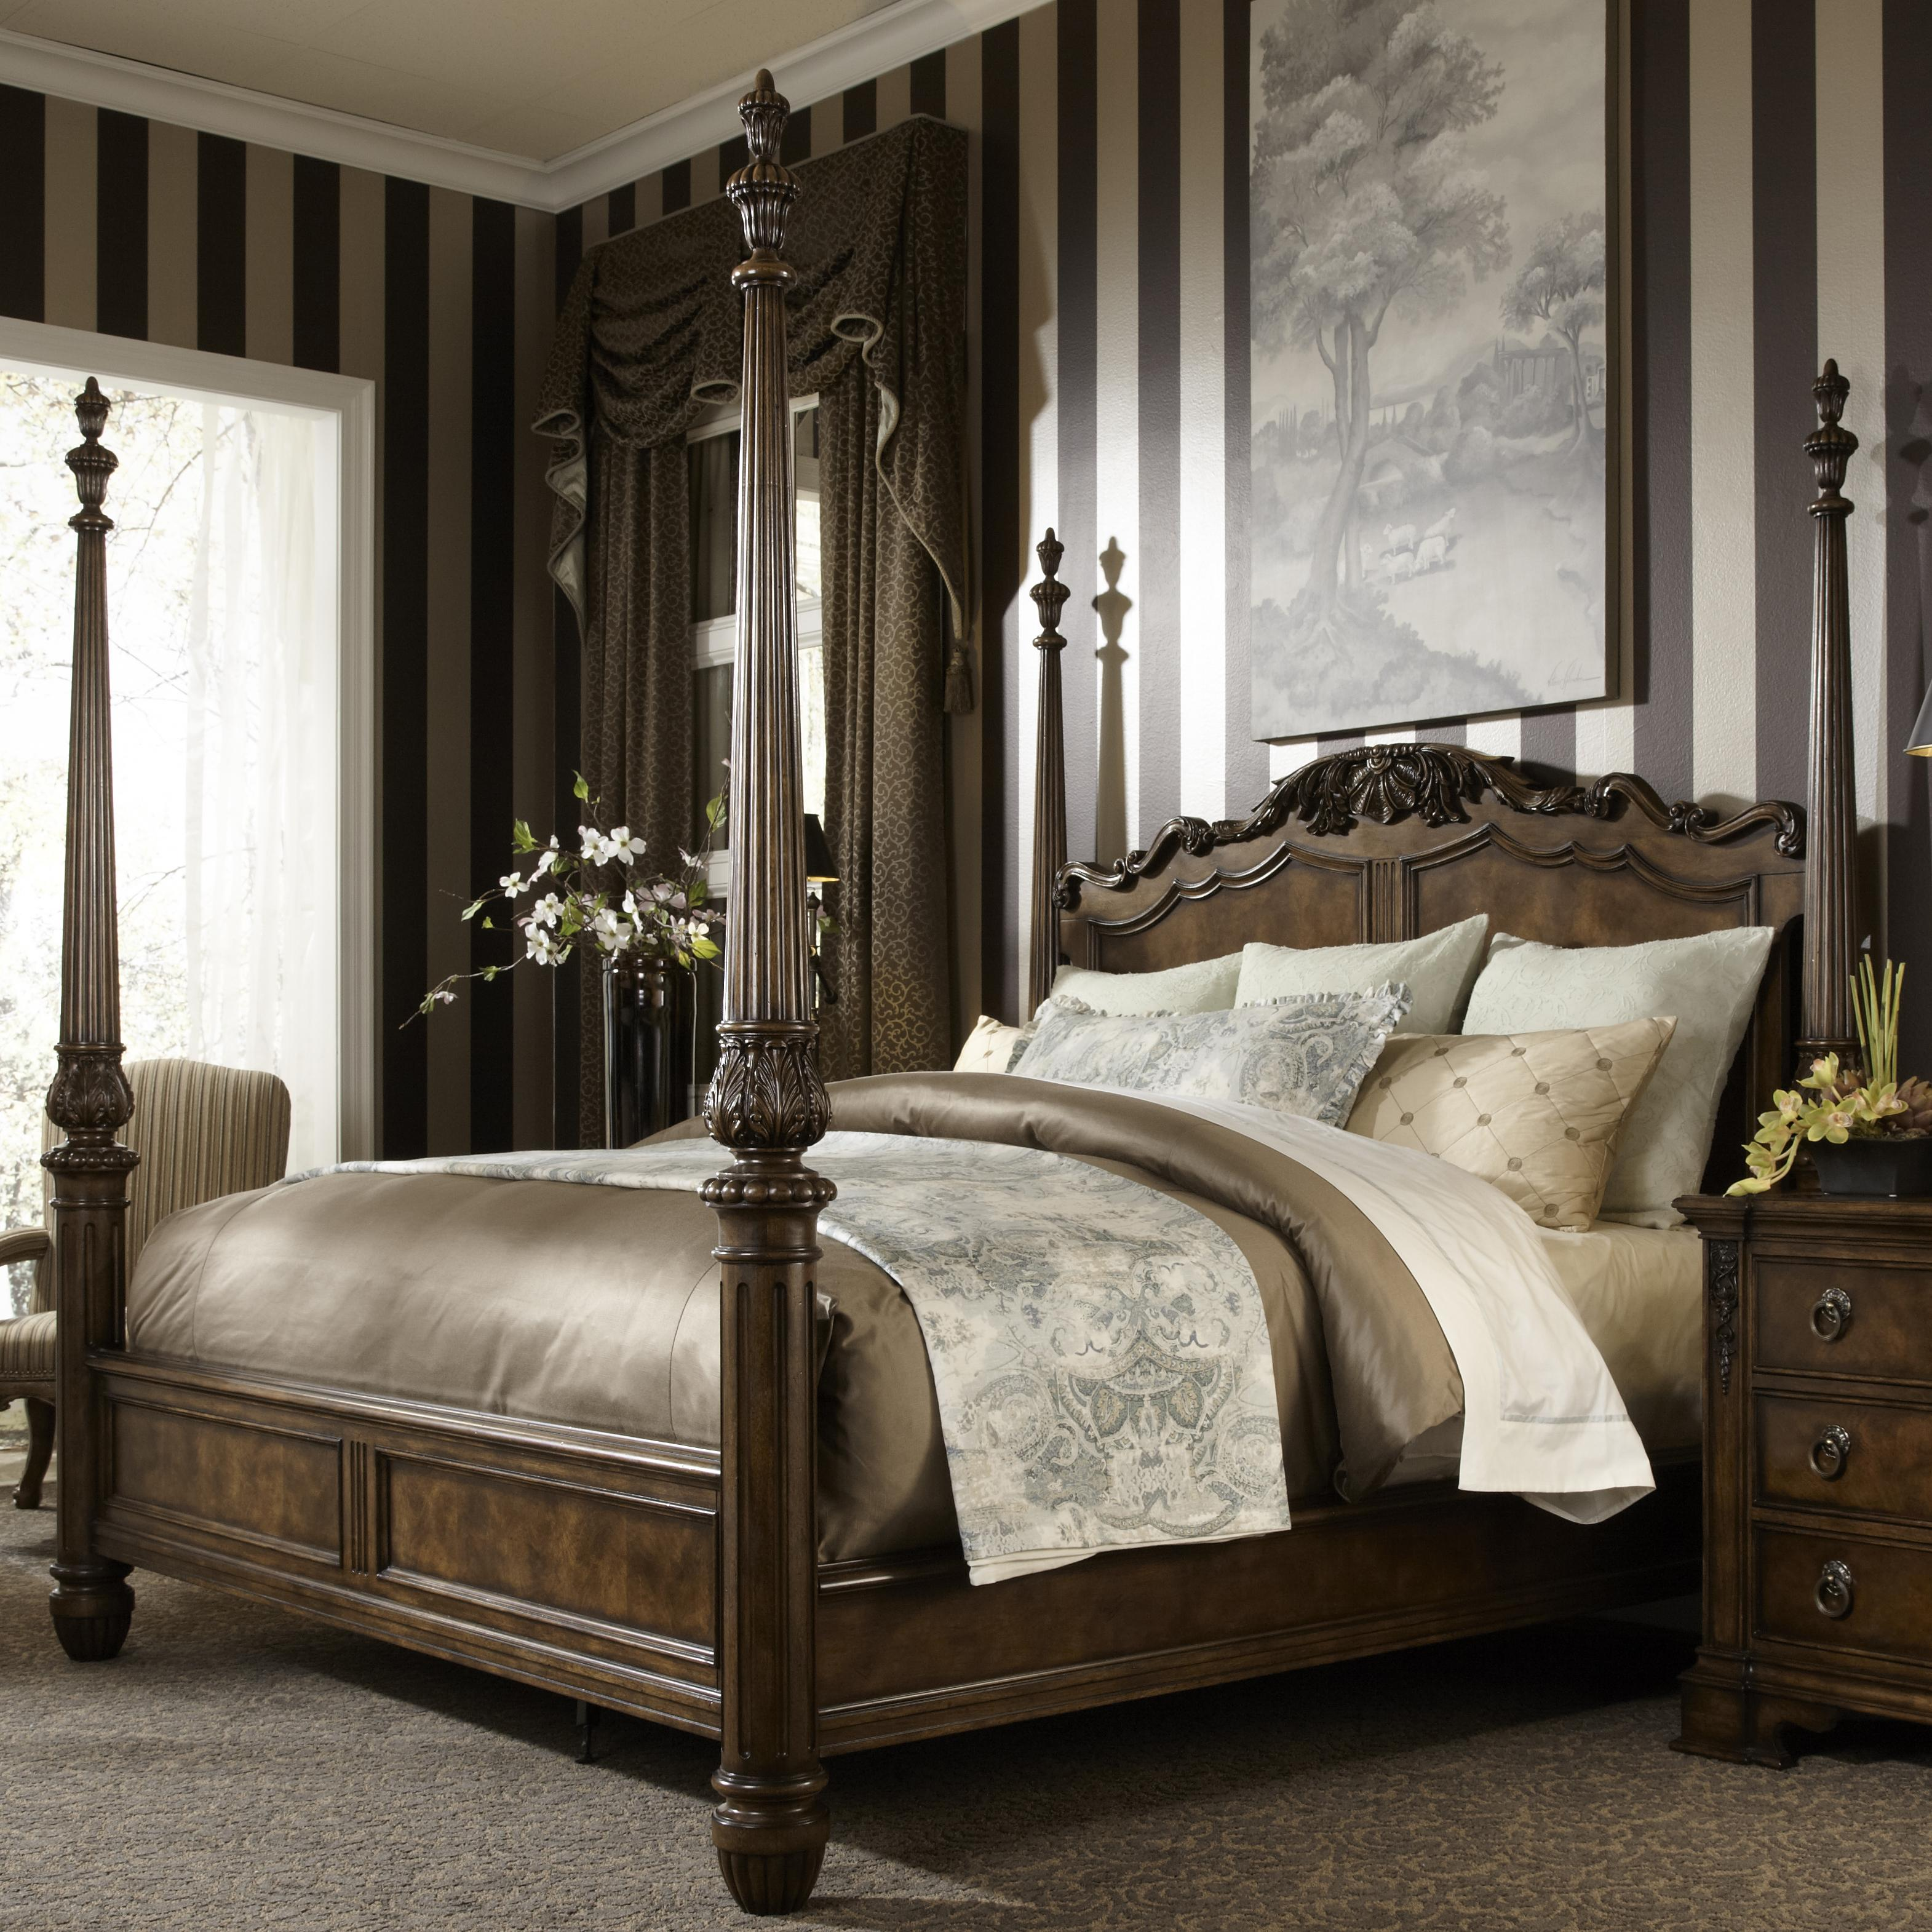 Fine Furniture Design Belvedere King Traditional Antique